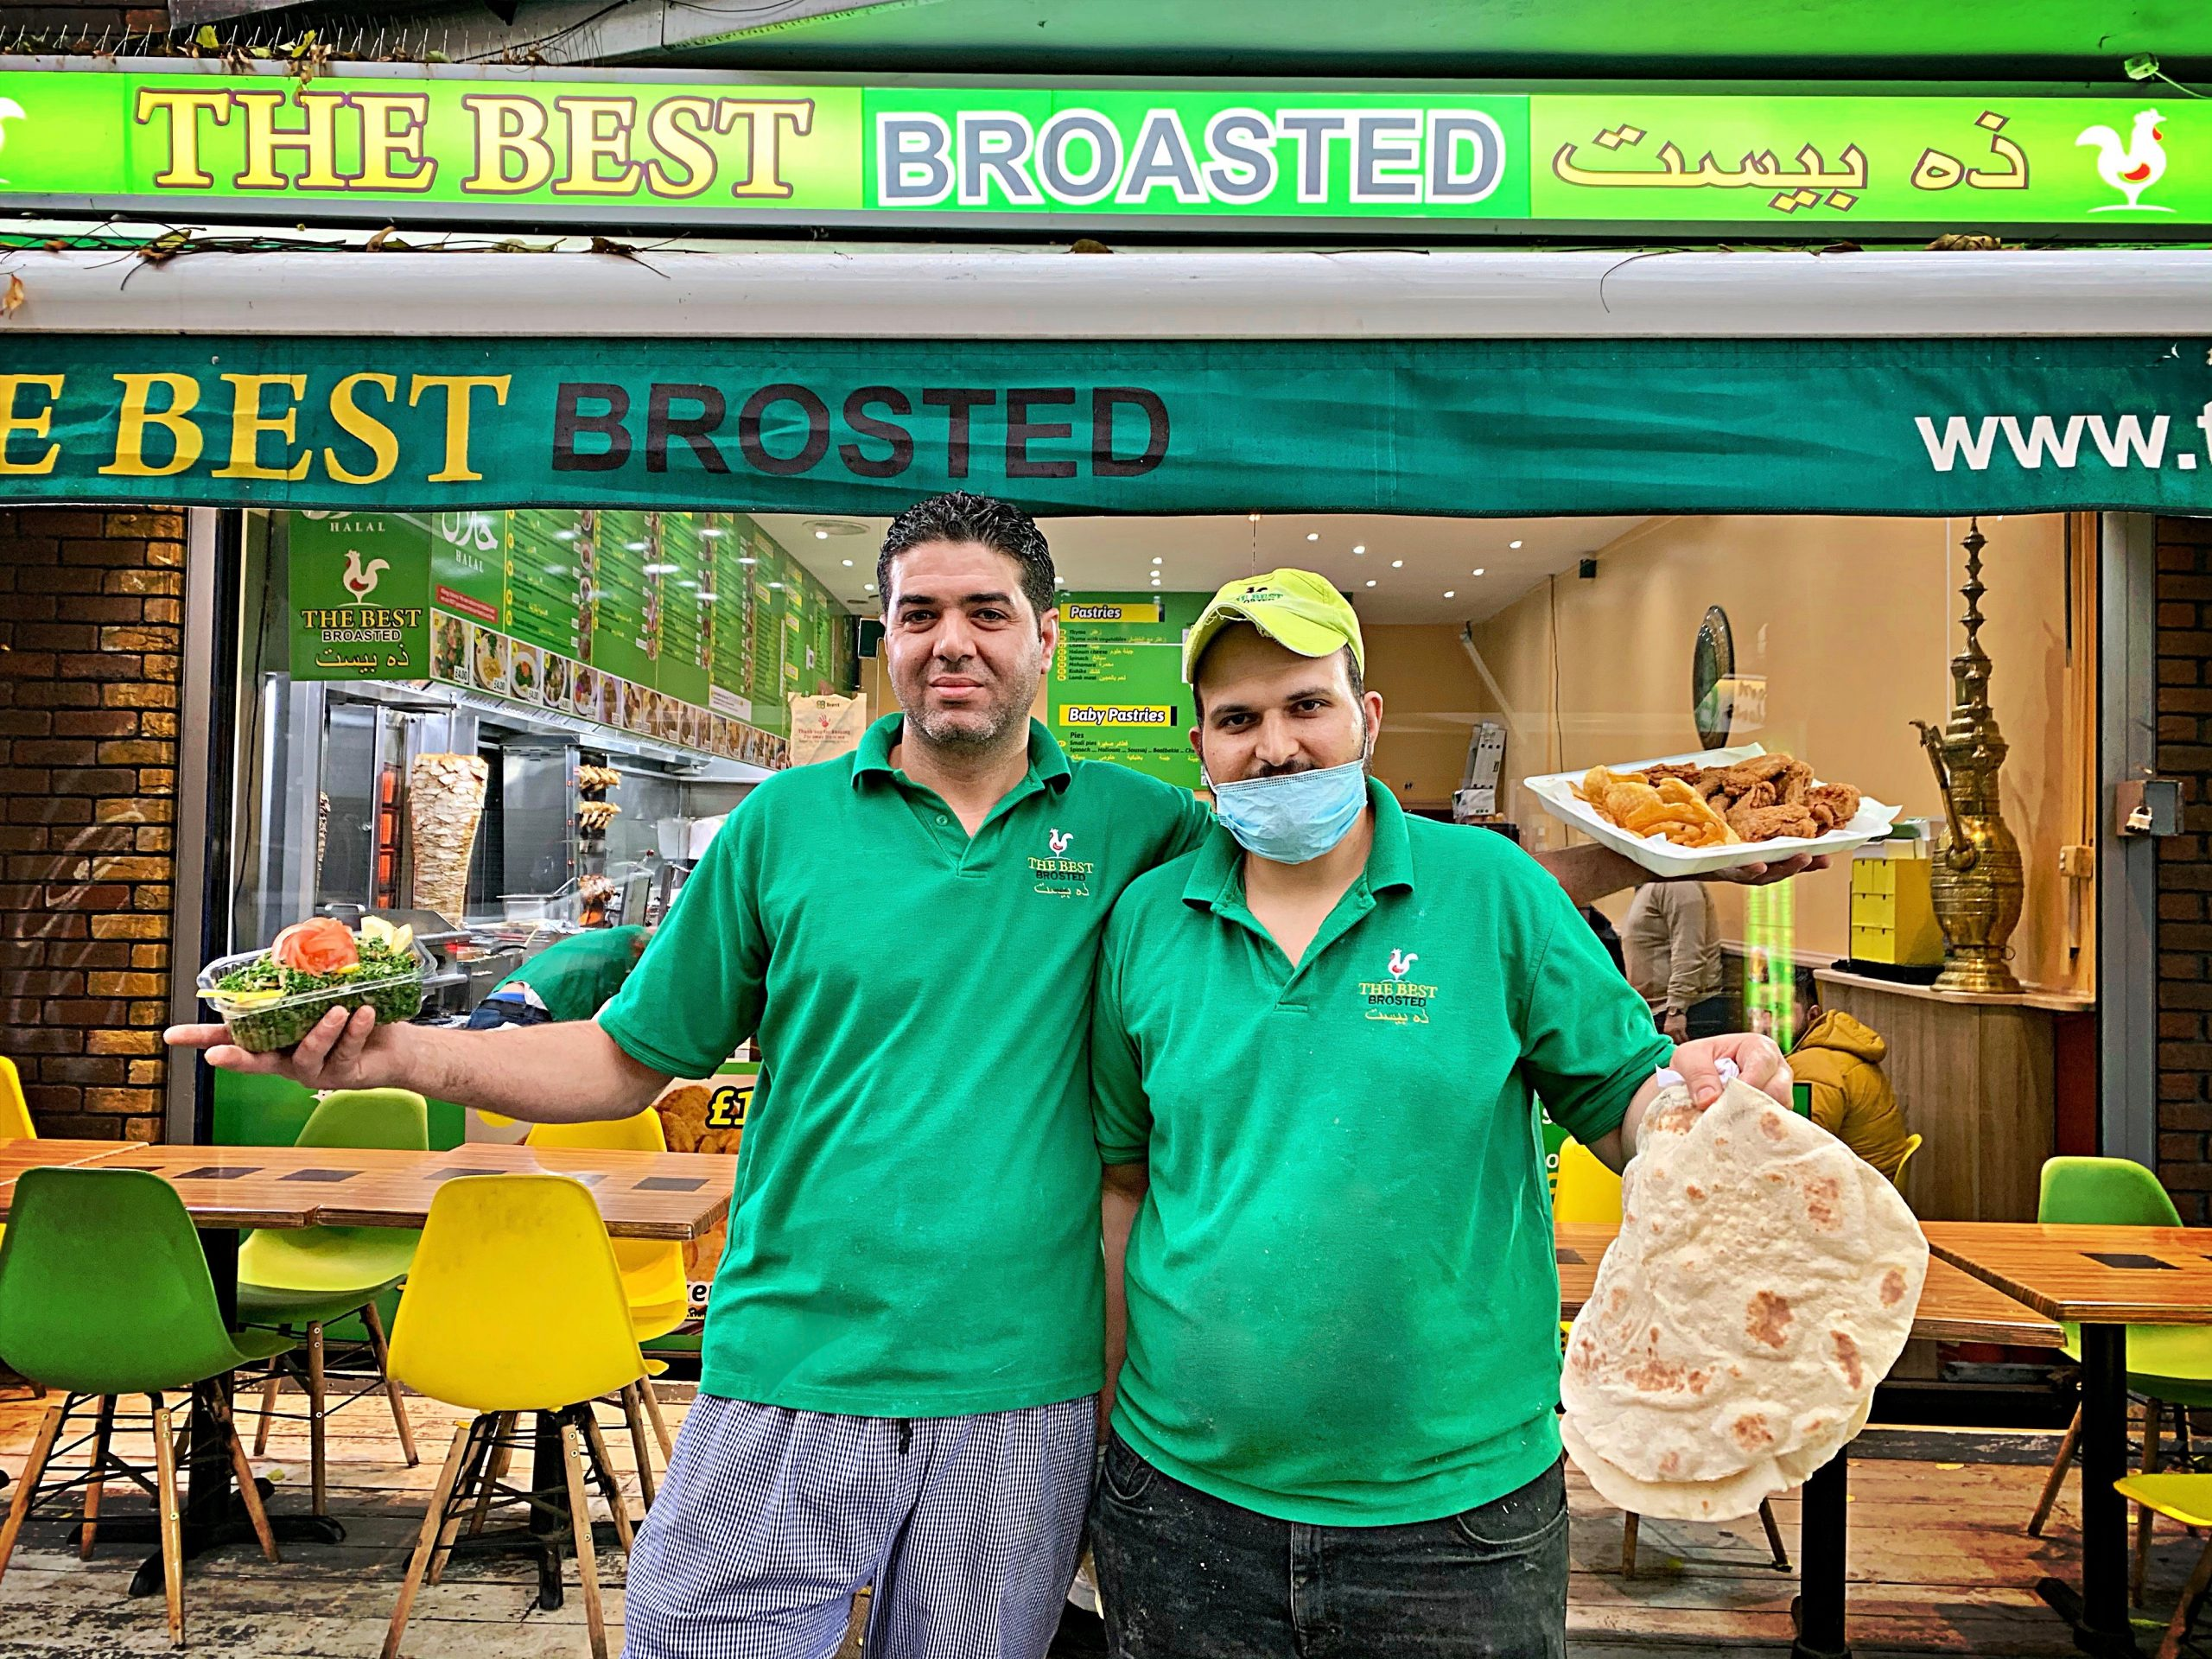 The Best Broasted, Willesden restaurant run by Syrian refugees pic:Kerstin Rodgers/msmarmitelover.com